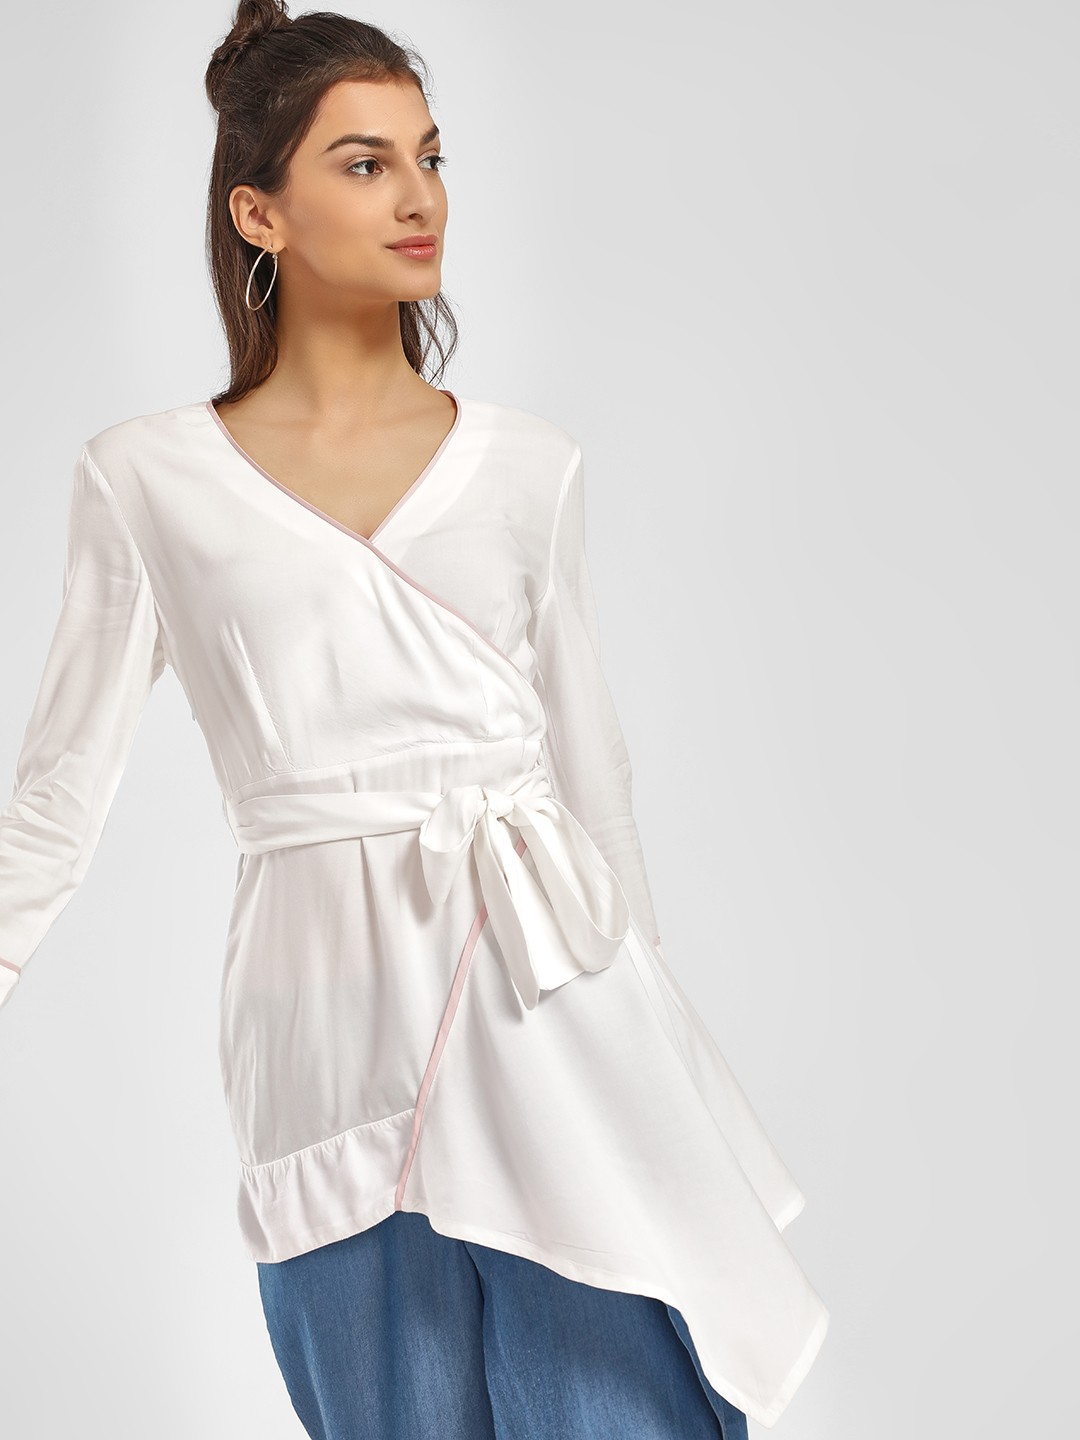 PostFold White Back Floral Embroidered Tunic Top 1